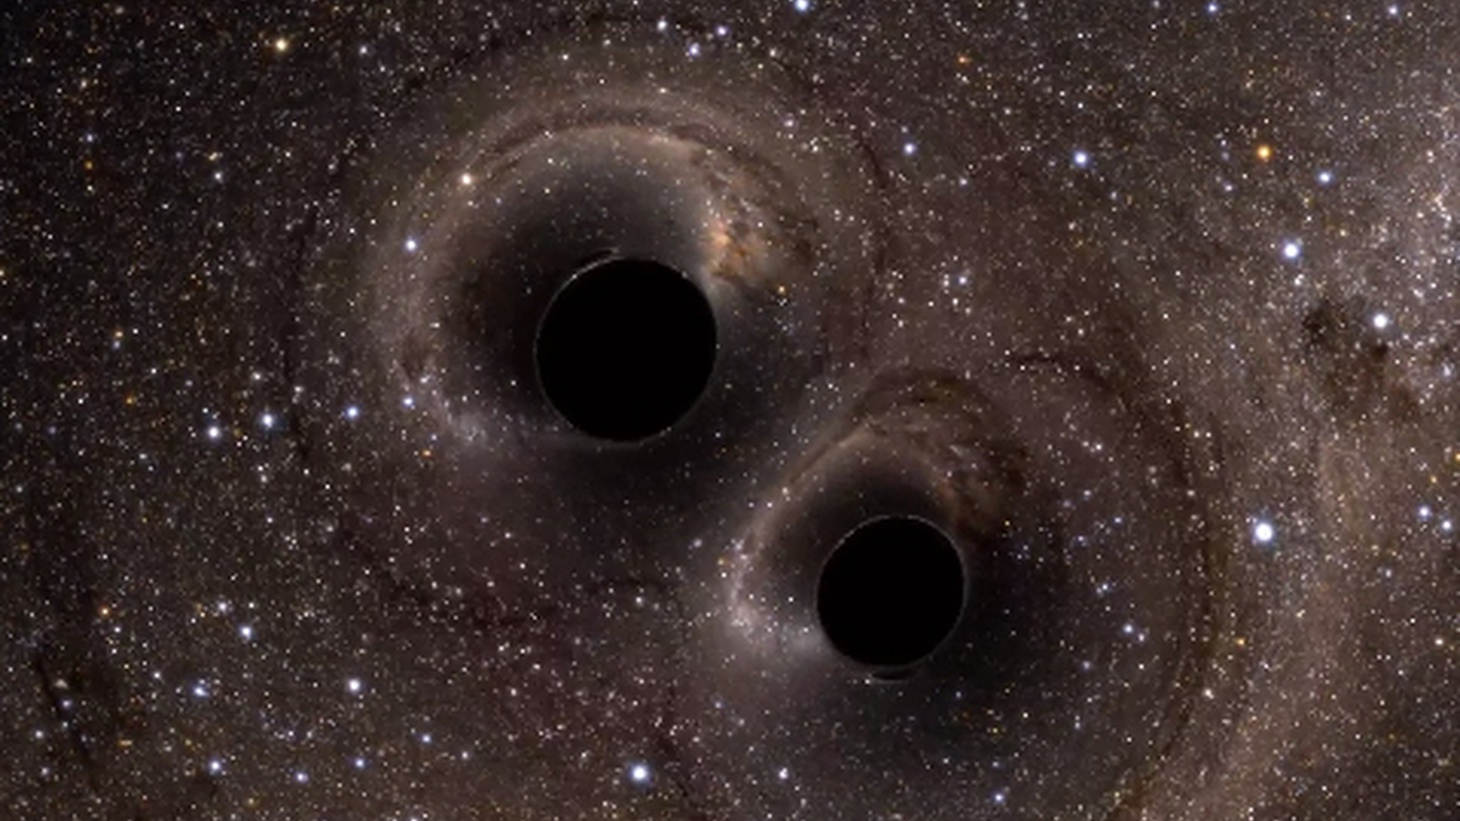 The world of astronomy is celebrating a discovery most of the rest of us will have trouble understanding. But it's said to provide a whole new way of looking at the universe -- and even listening to it.